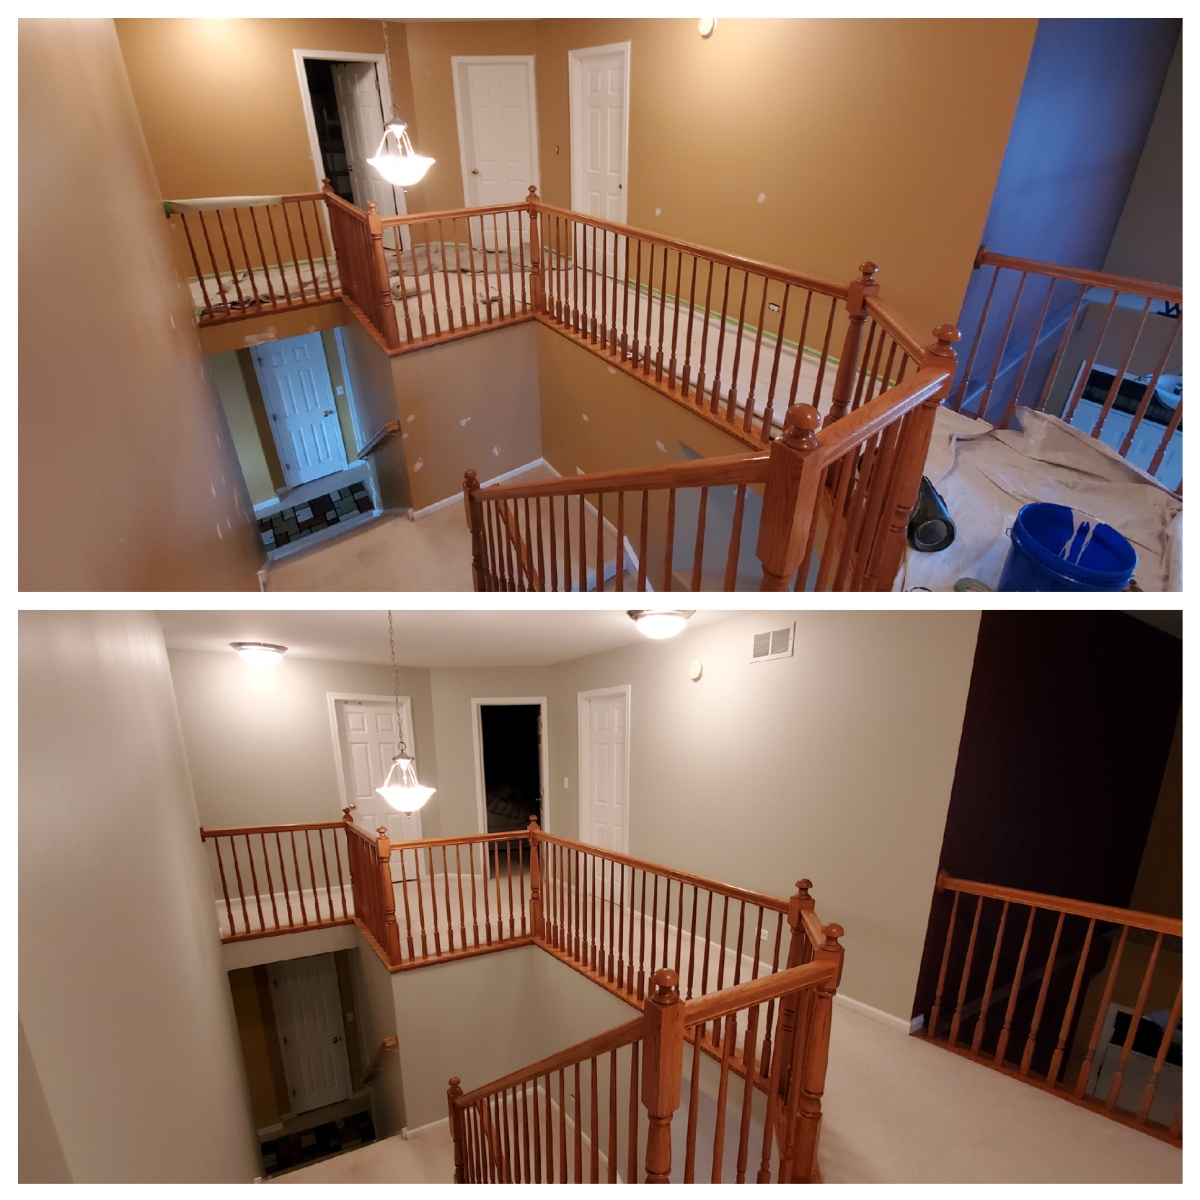 Walls I painted with Sherwin Williams paint.